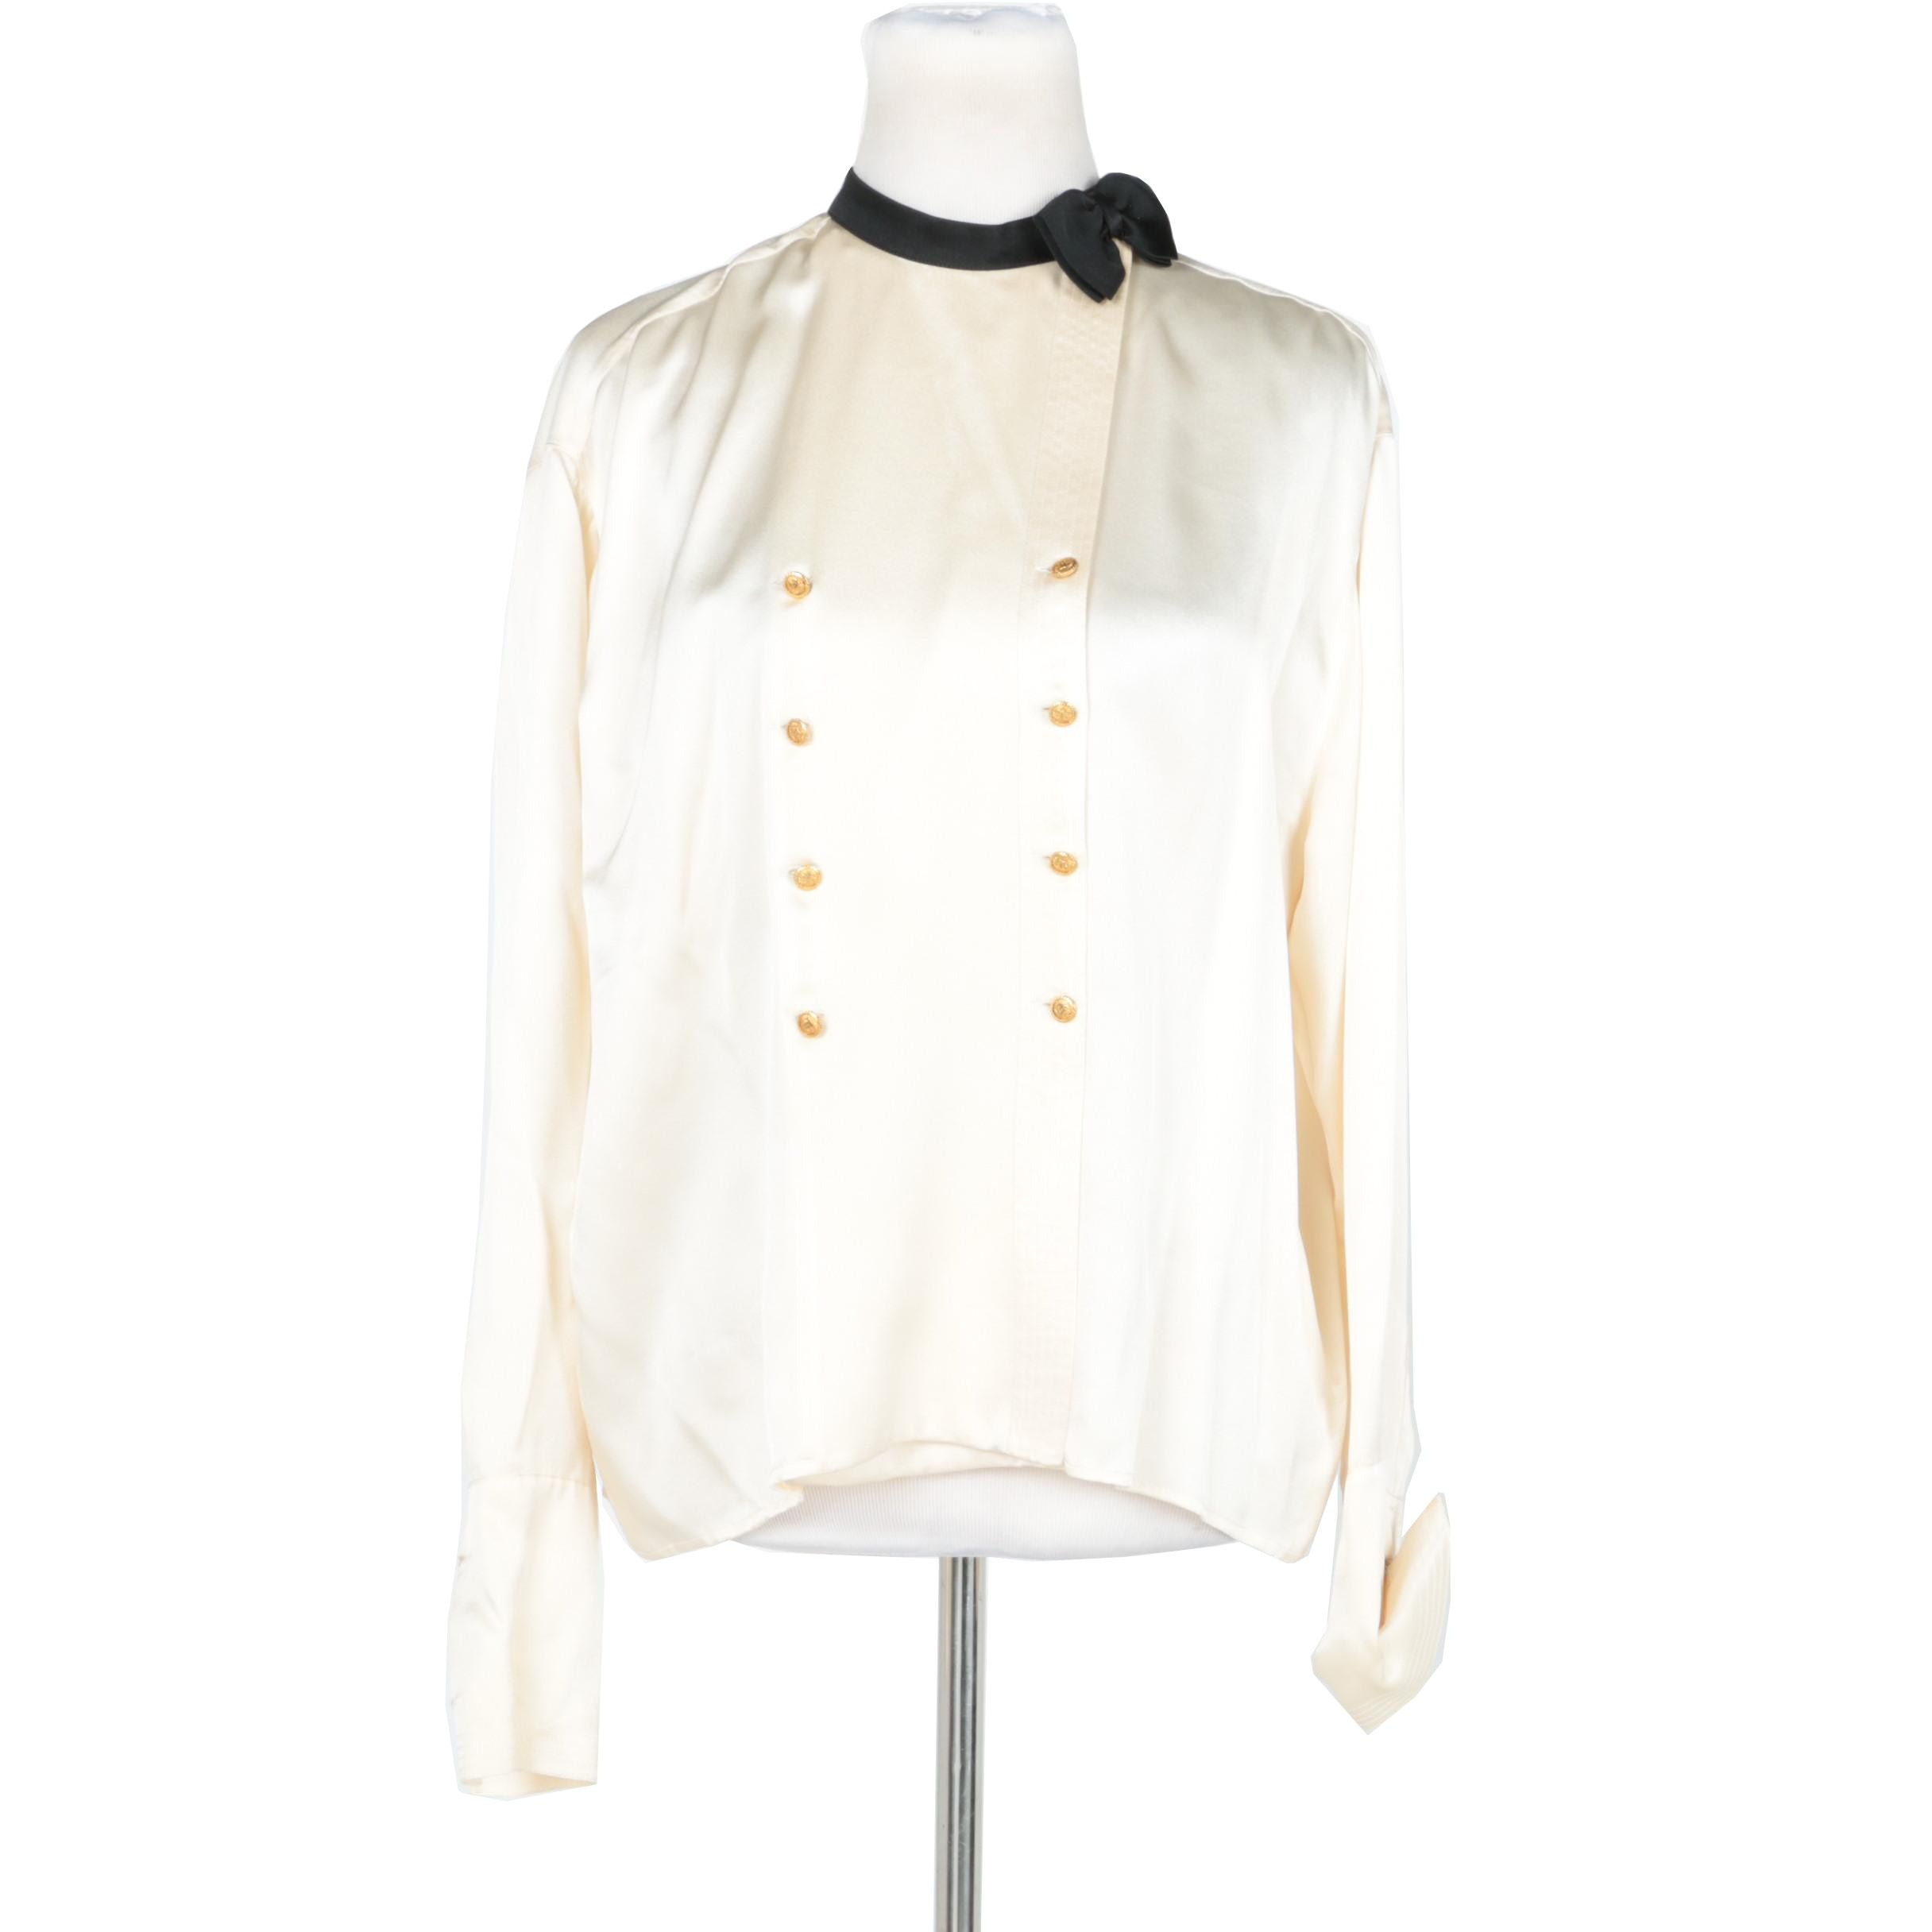 Chanel Boutique Silk Blouse